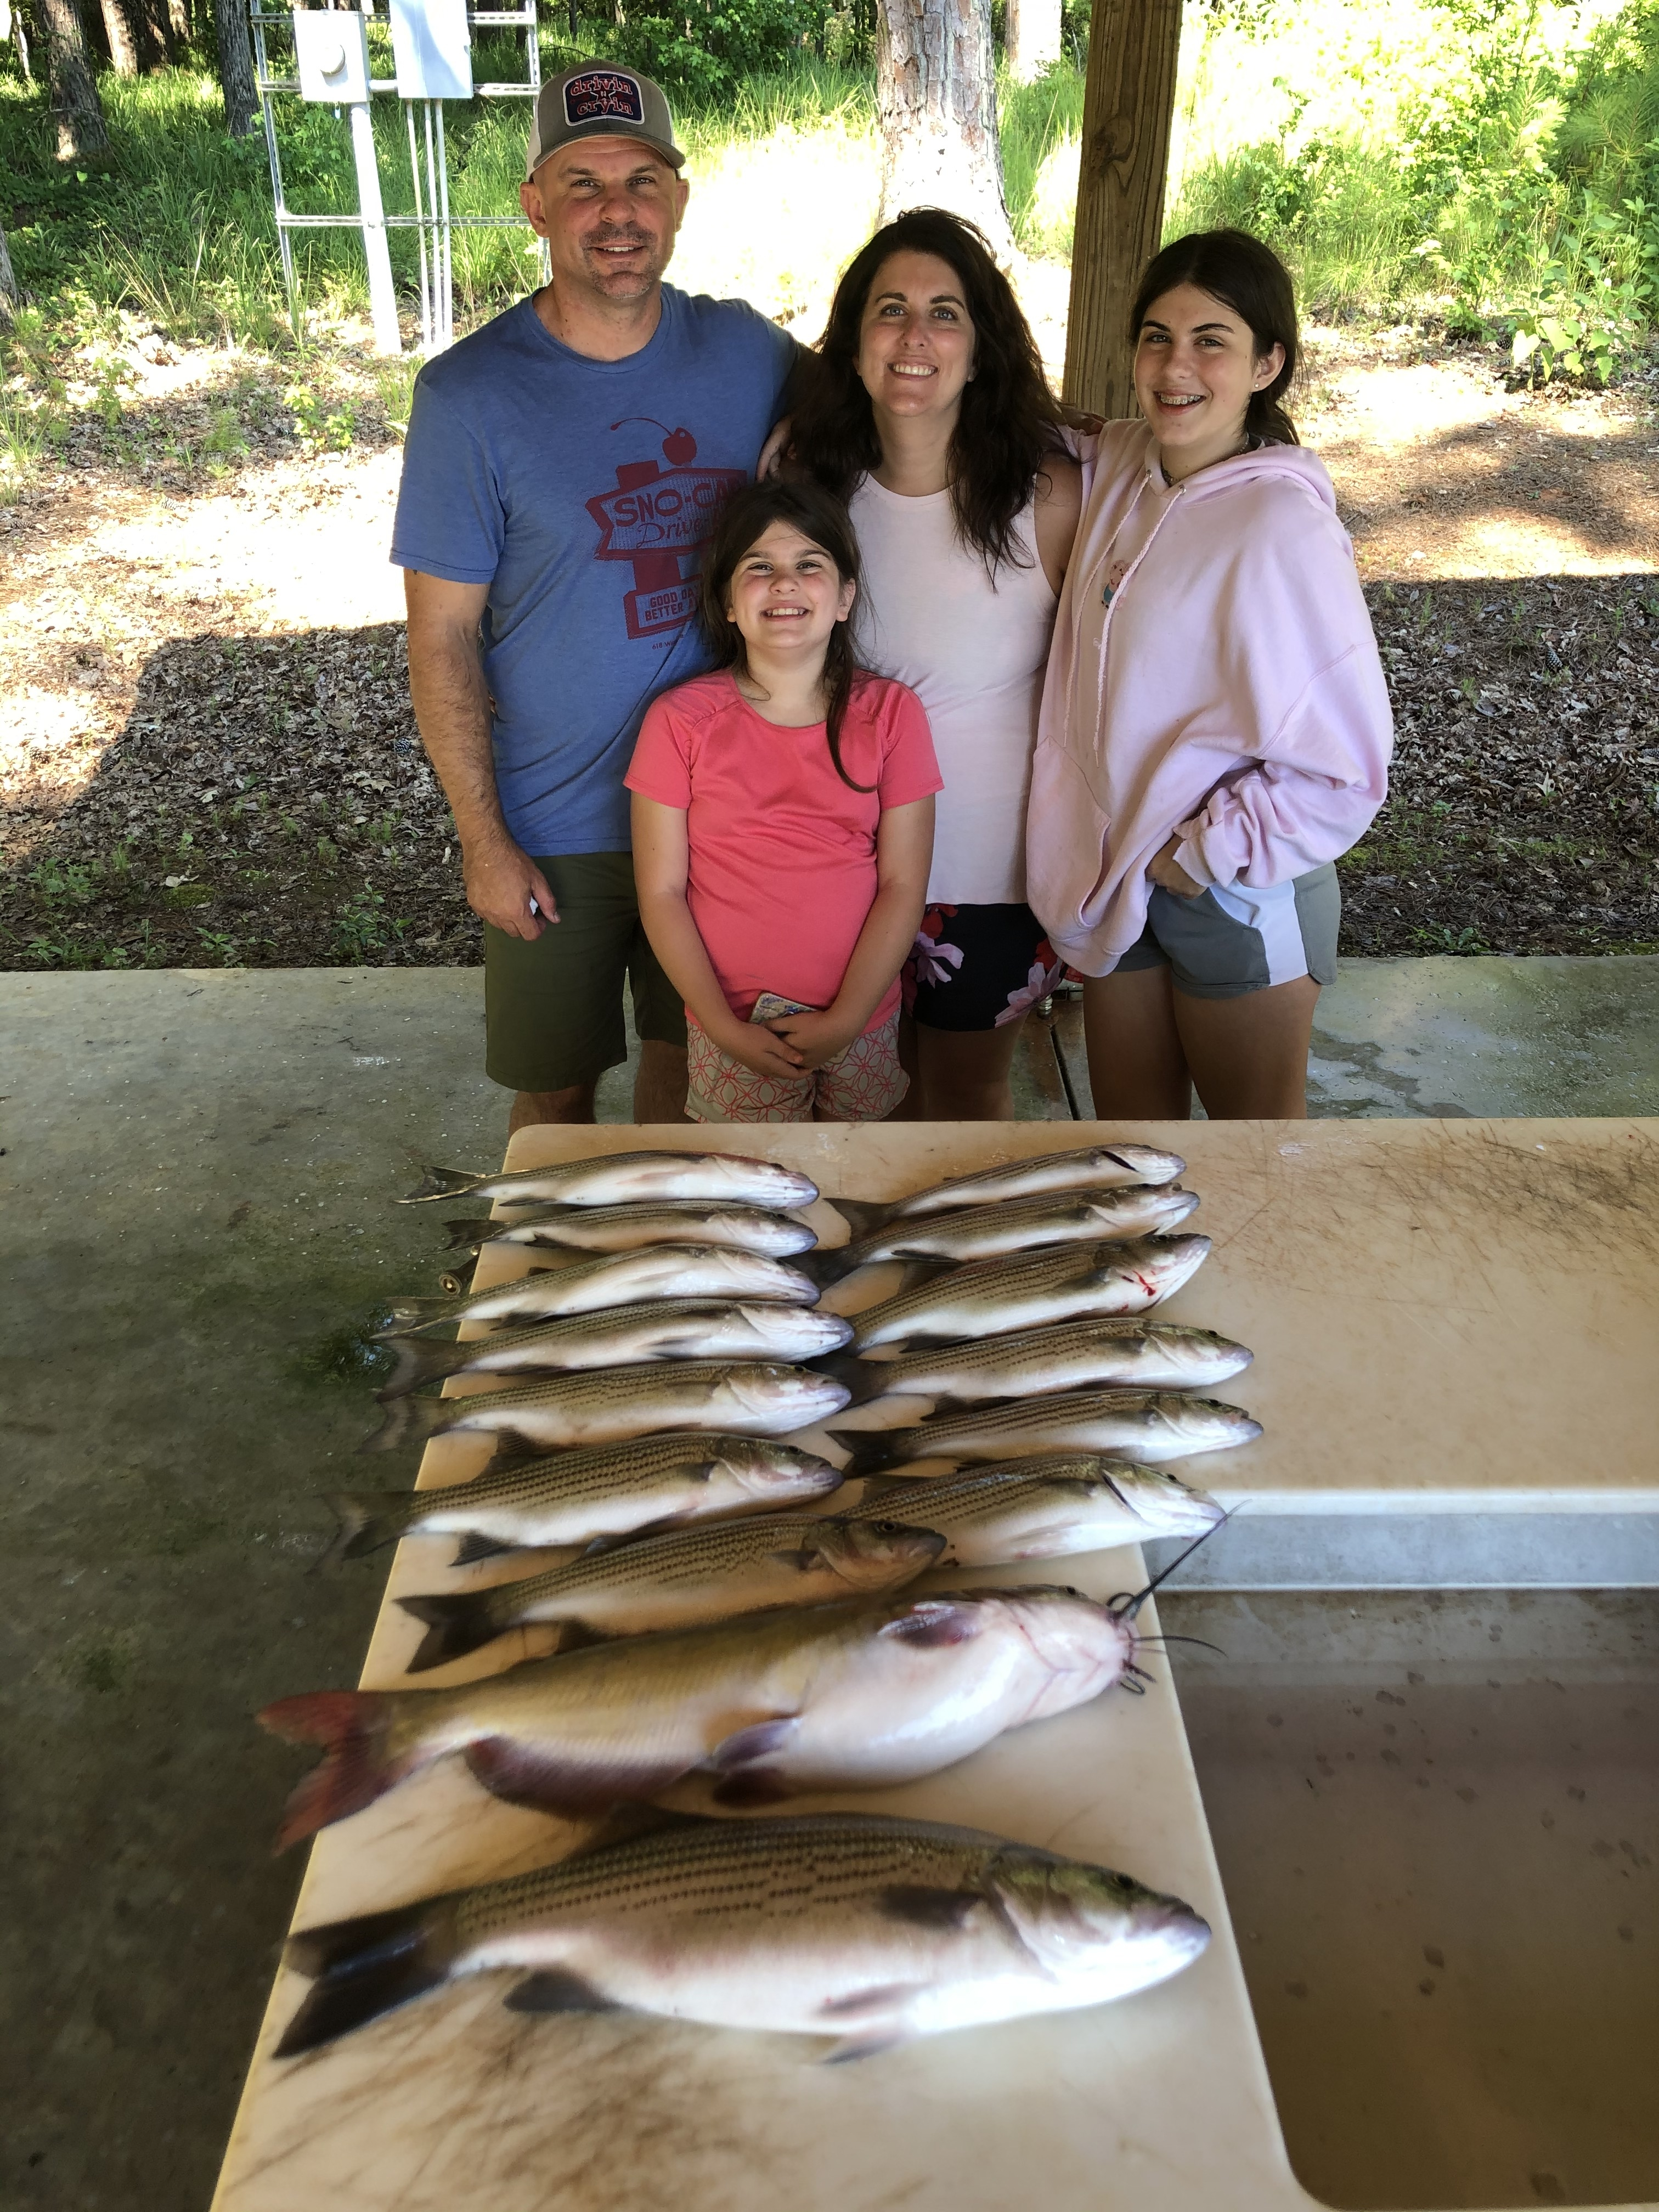 June-20-2020-Jason-Victoria-Rueggeberg-and-their-two-girls-Isabelle-and-Eliese-with-their-catch-of-the-day.IMG_3289